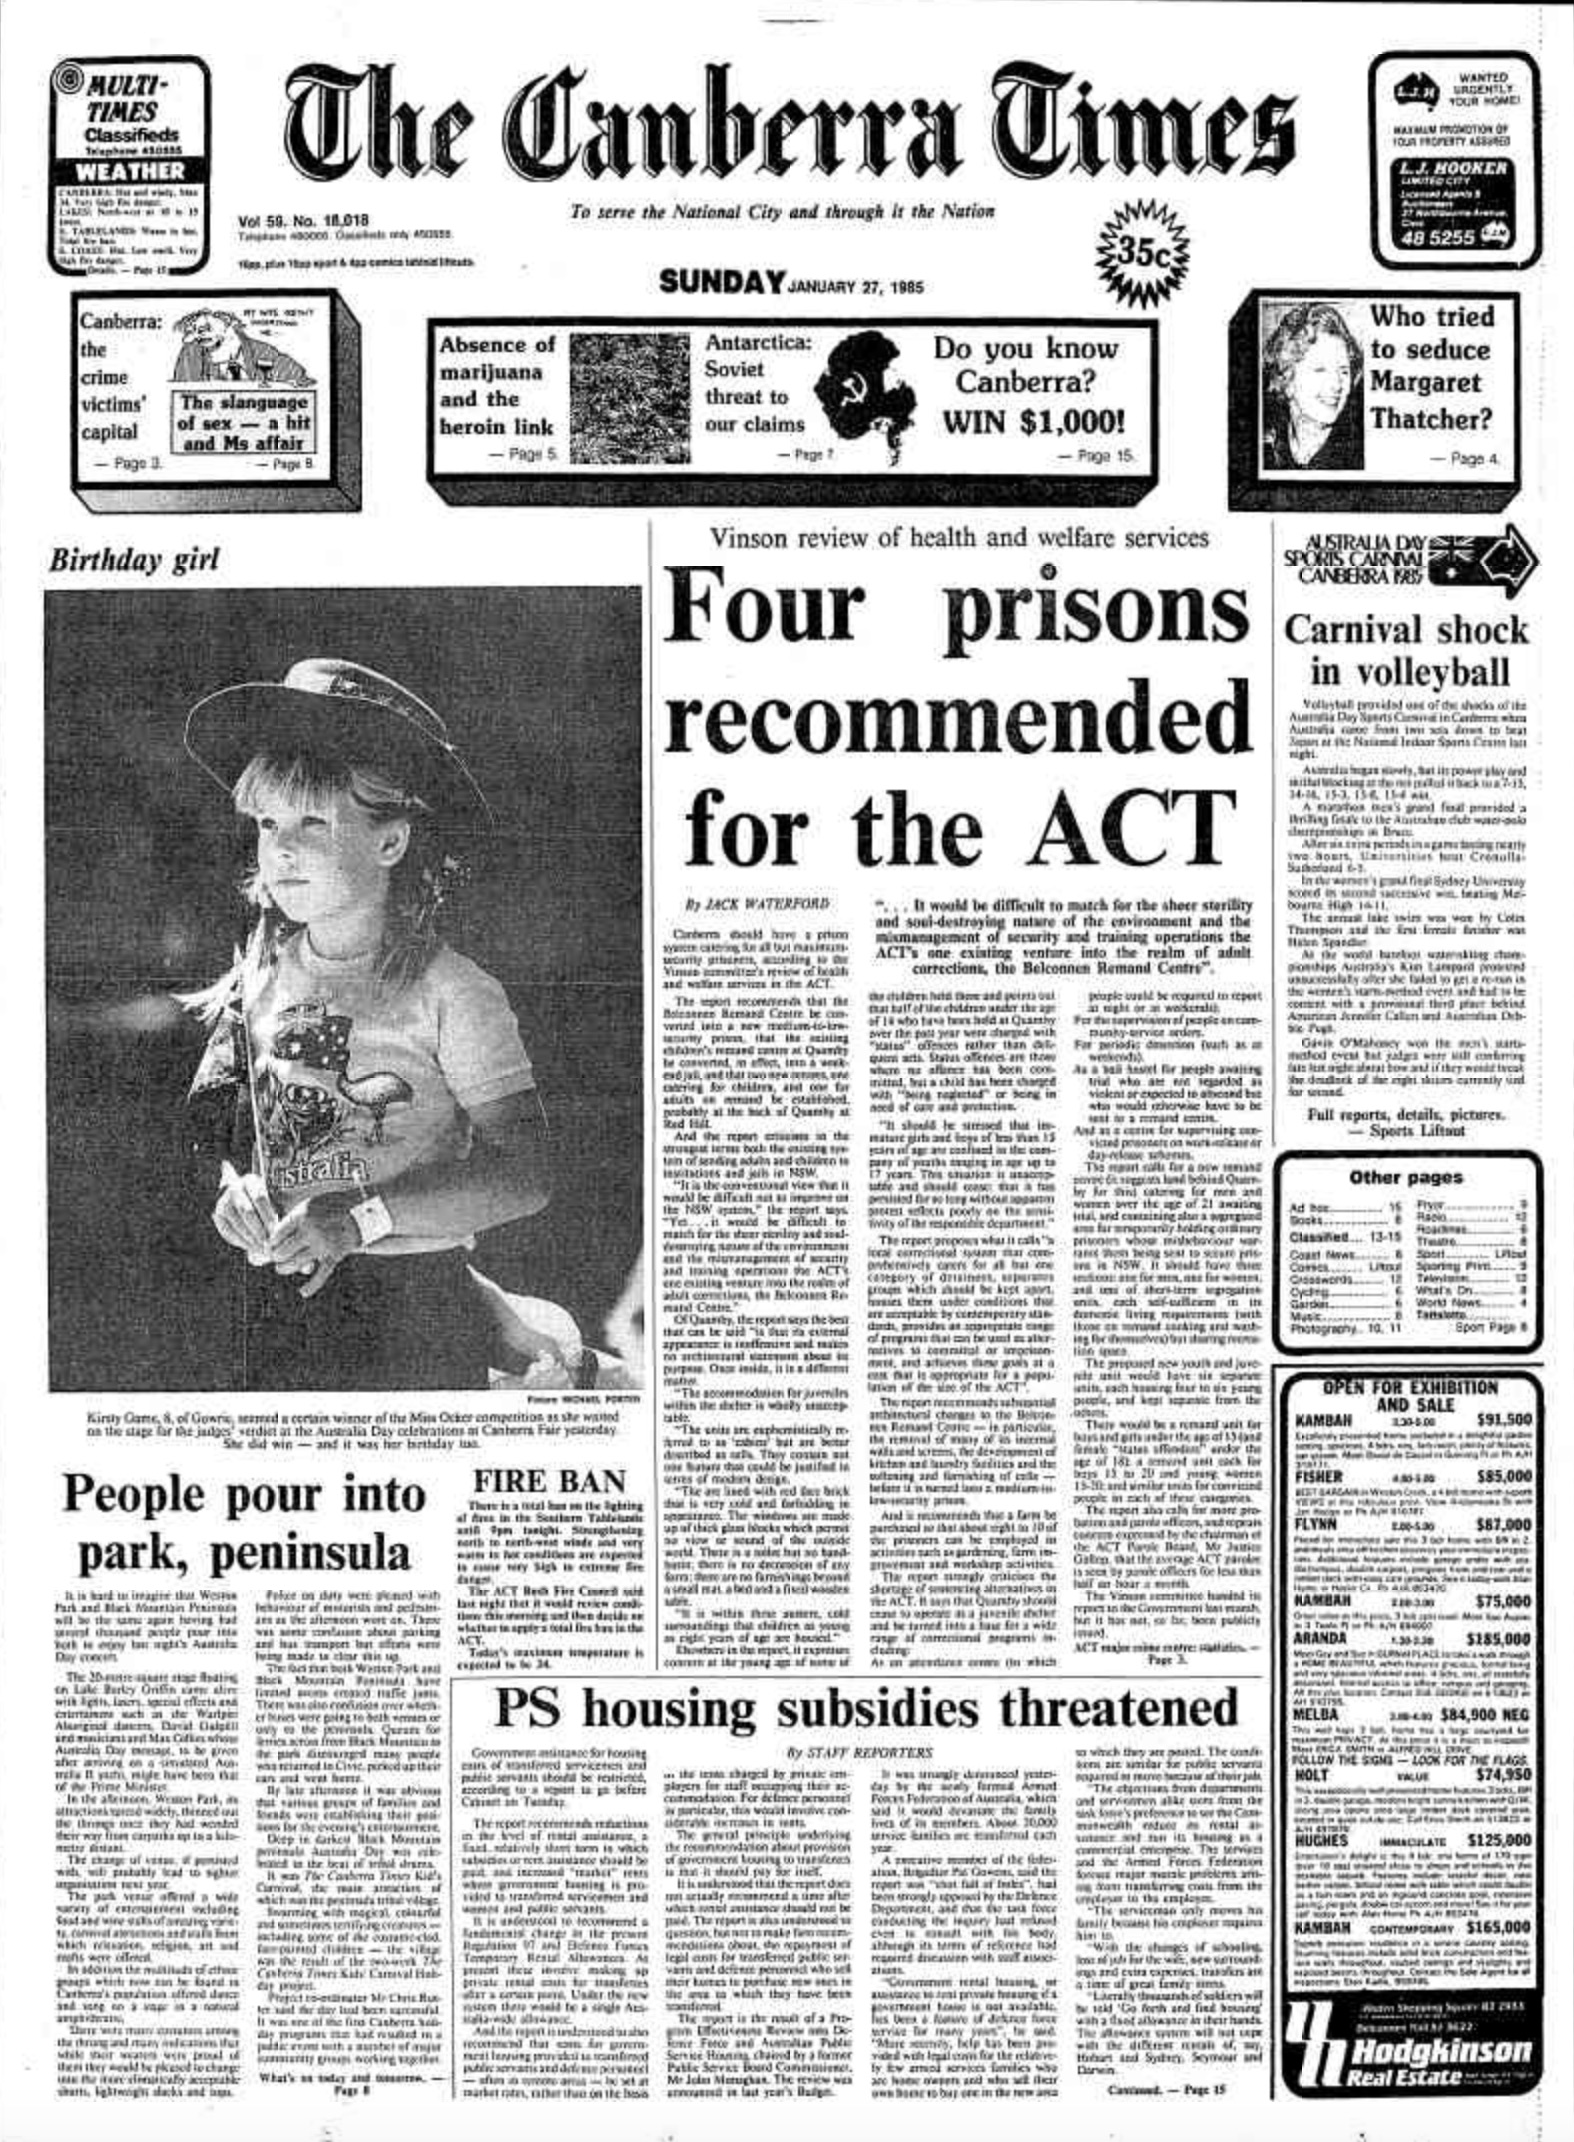 Canberra Times 1985 01 27 pg 1